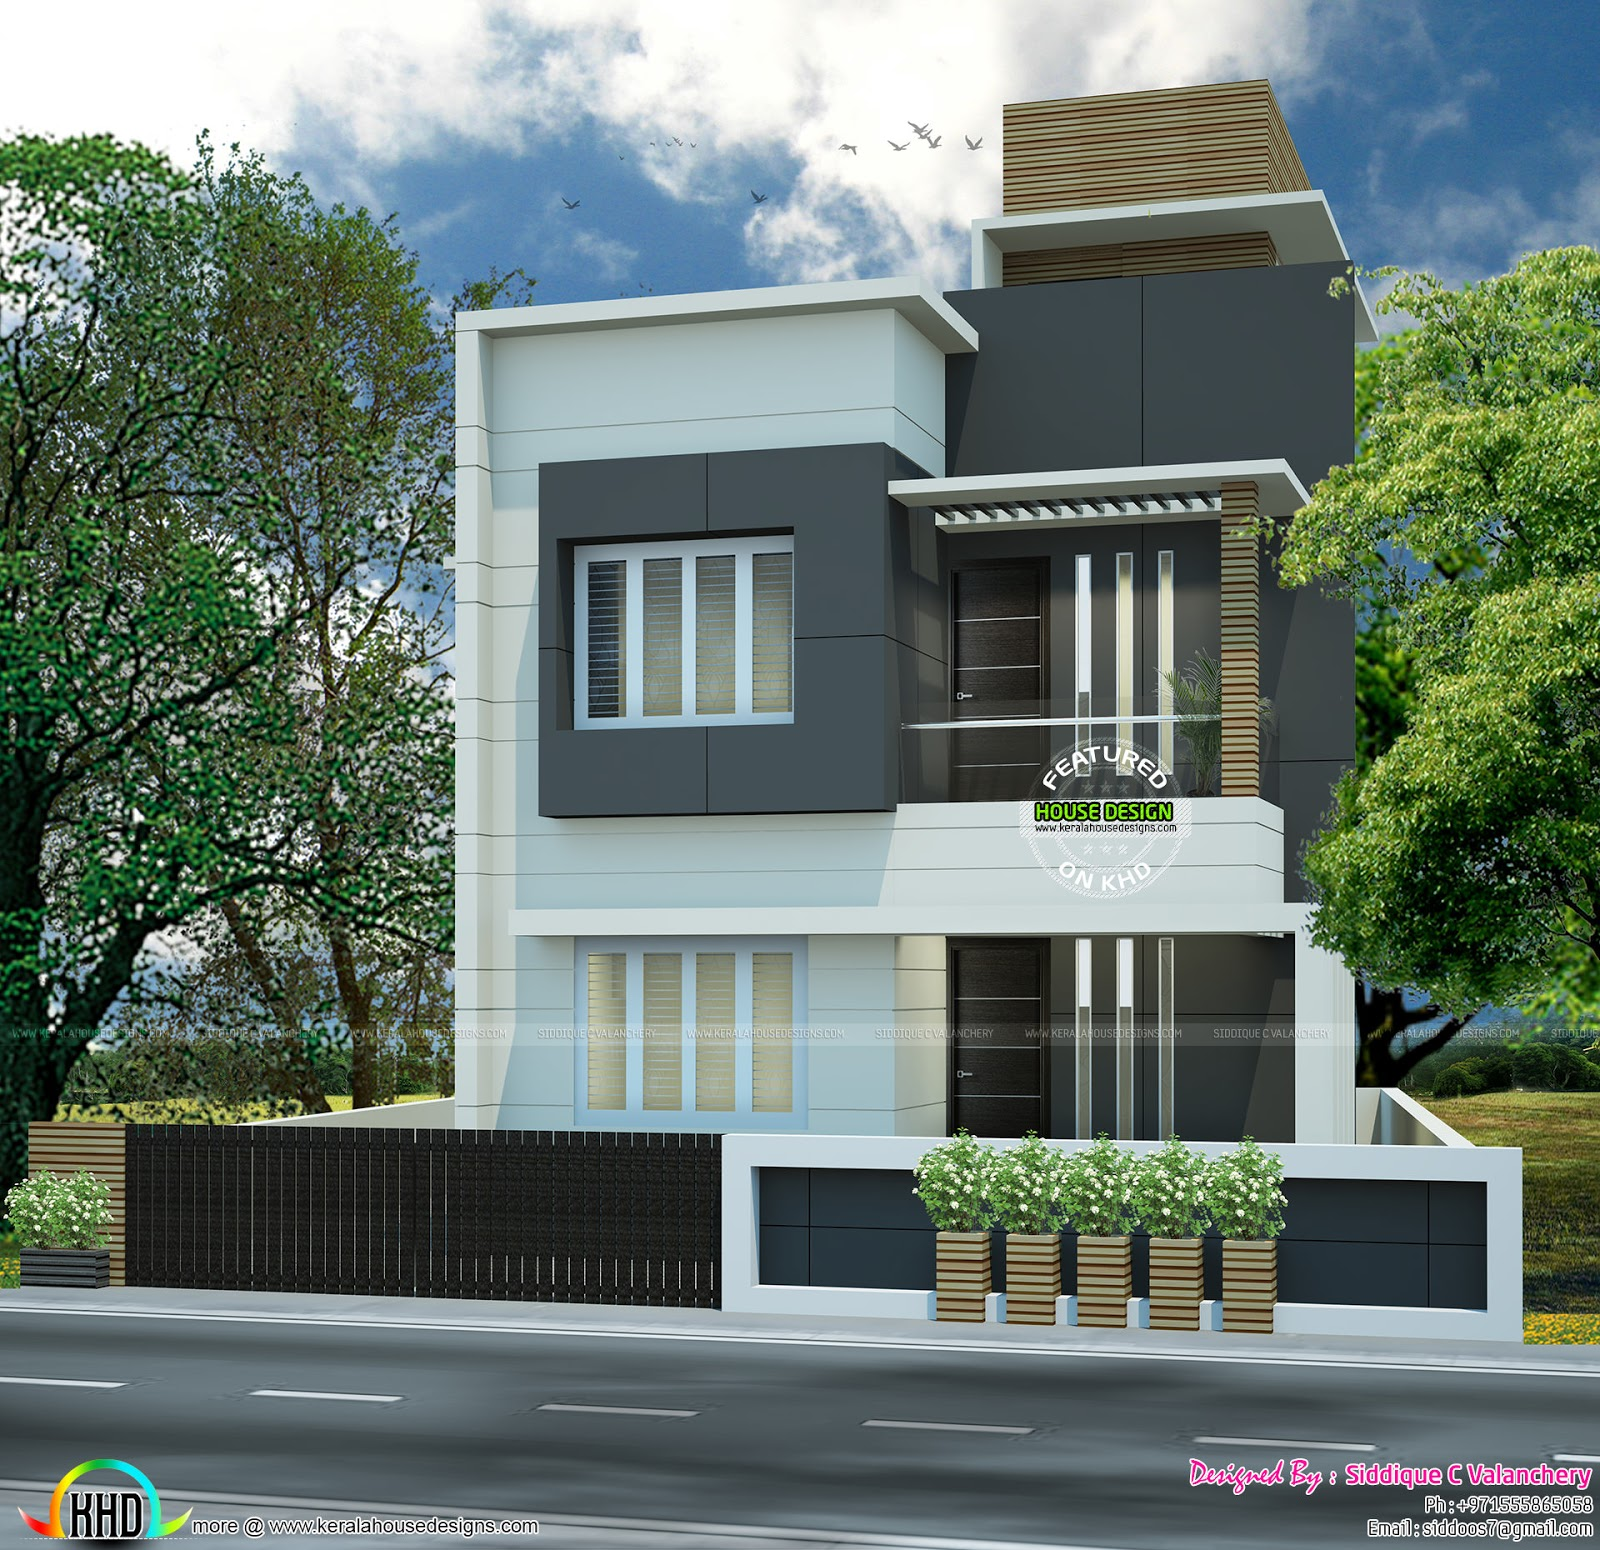 Ground Floor Area : 555 Sq. Ft. First Floor Area : 535 Sq. Ft. Total Area :  1090 Sq. Ft. No. Of Bedrooms : 3. Design Style : Flat Roof